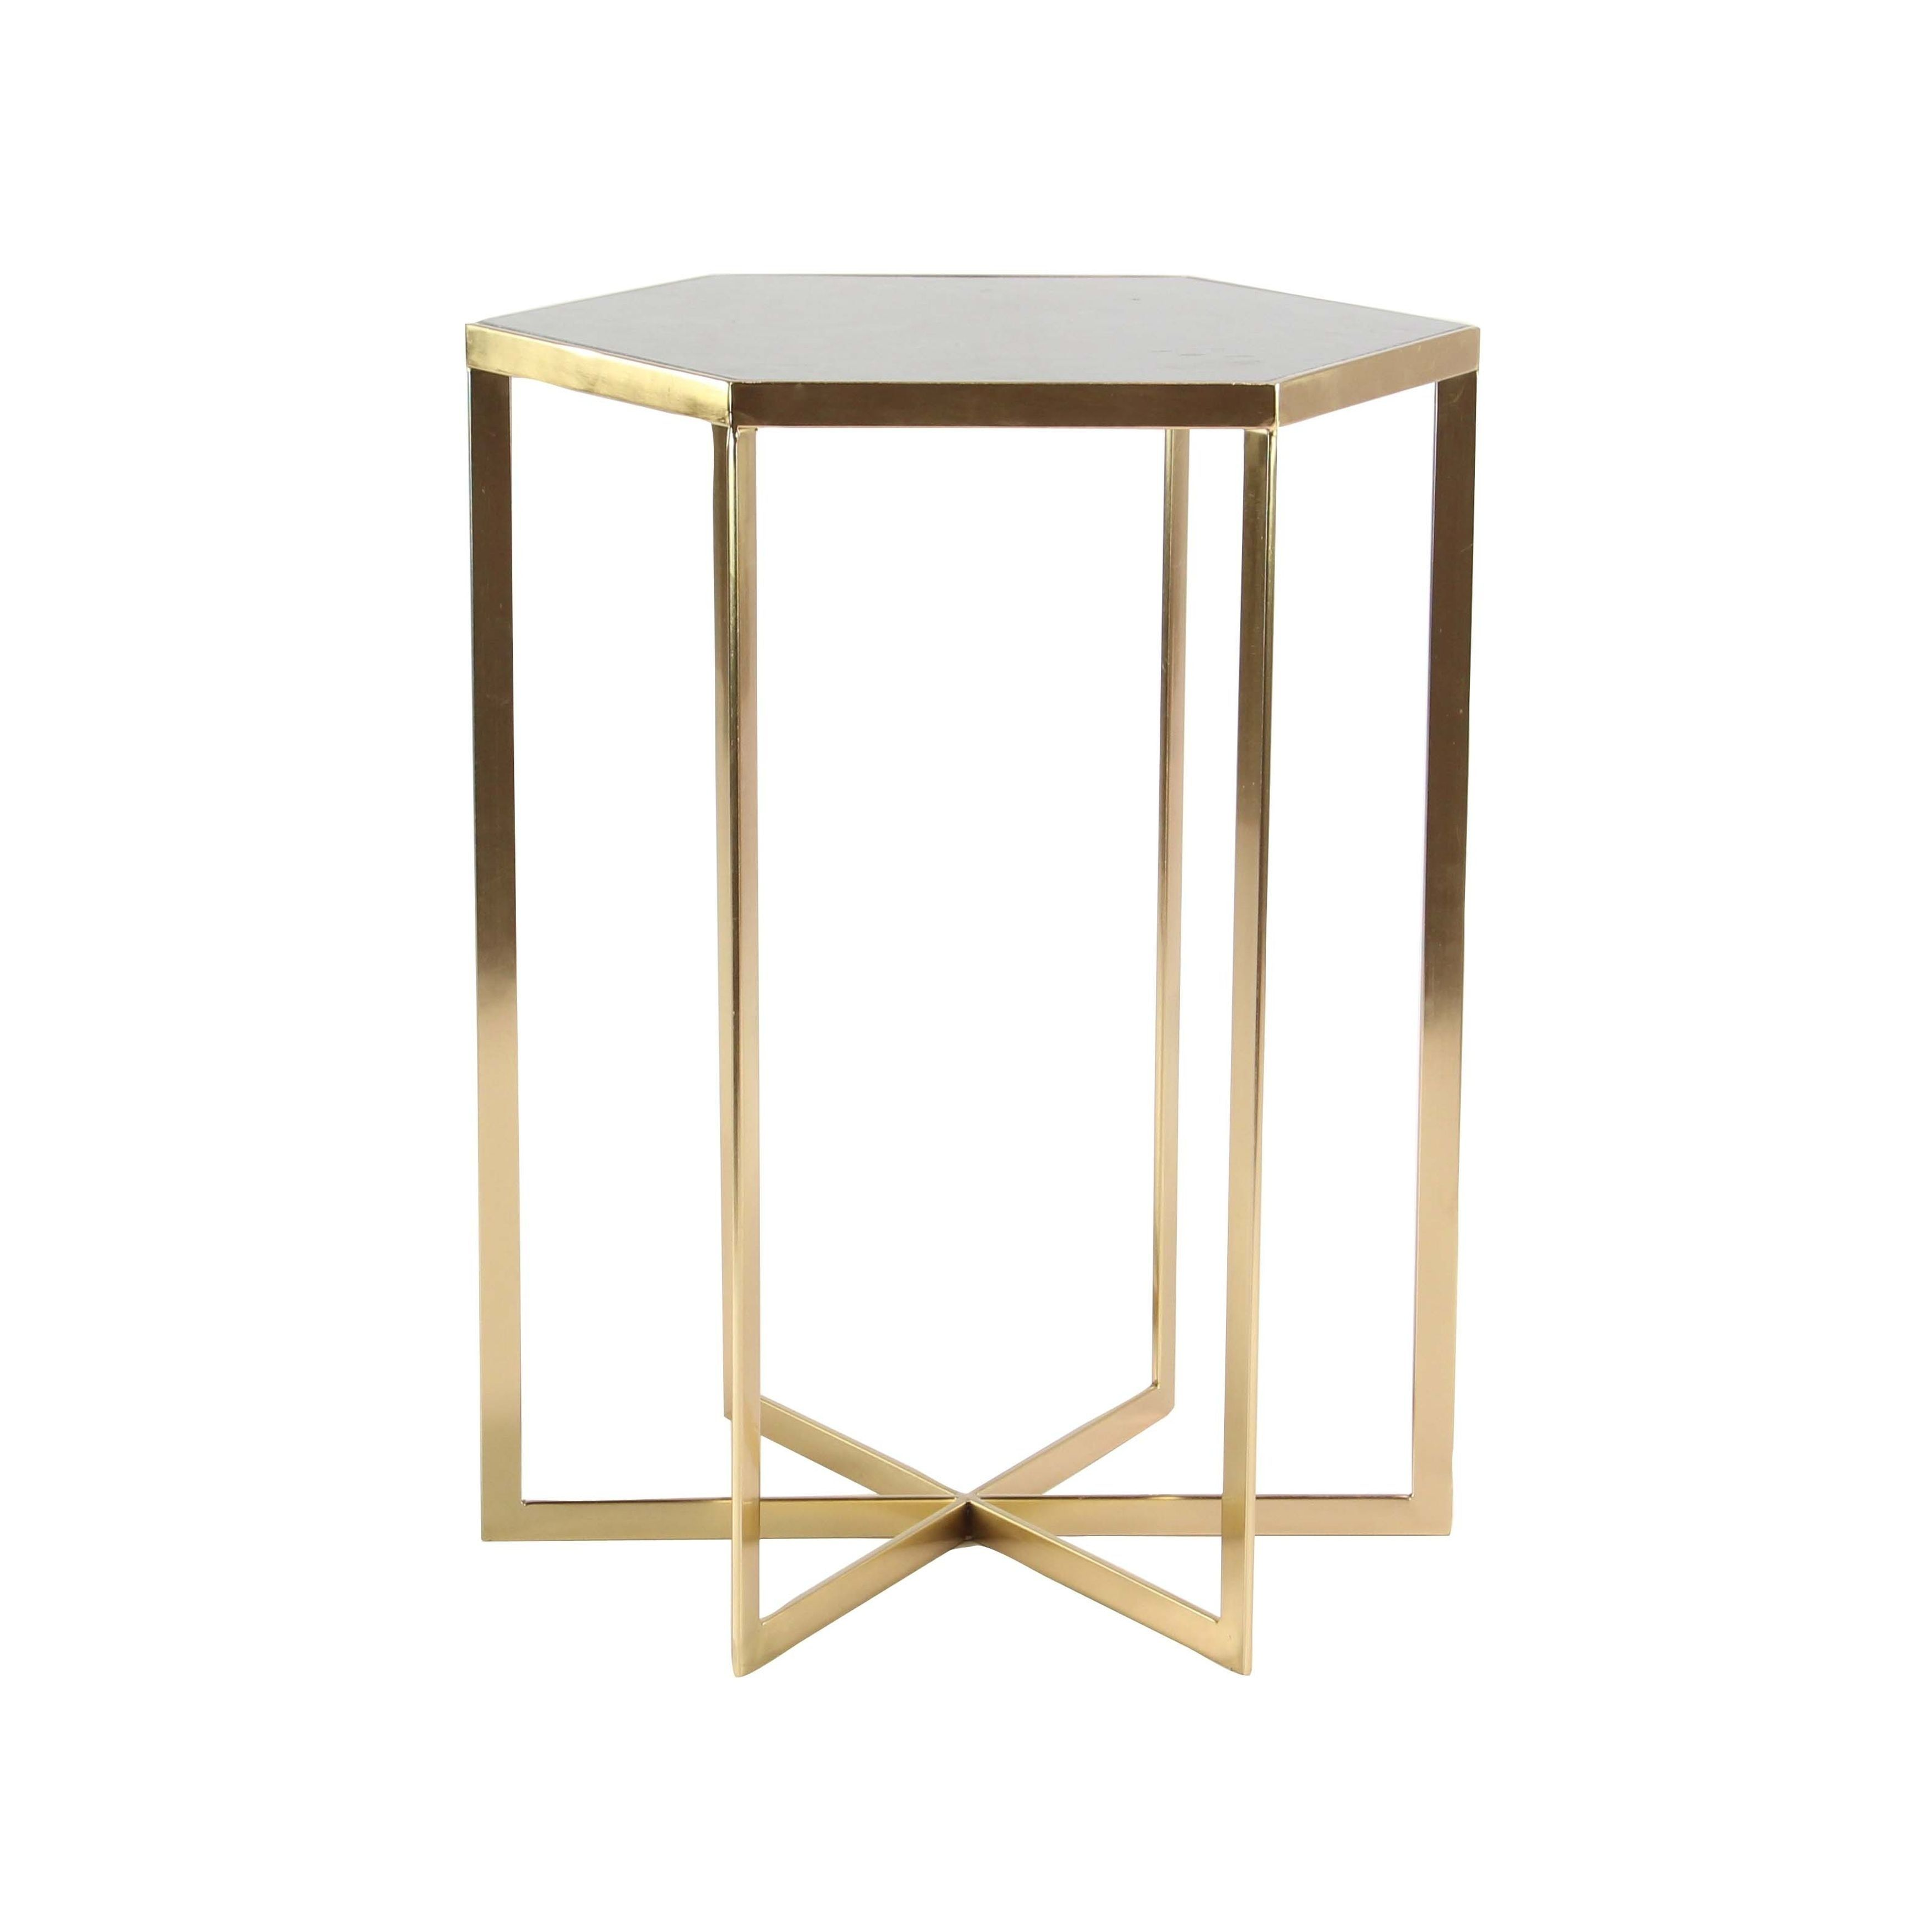 faux side round convenience table concepts lamp golden medal marble design standing end and white target concacaf legs rose dining runner base cup grazing hire coast coaster pool